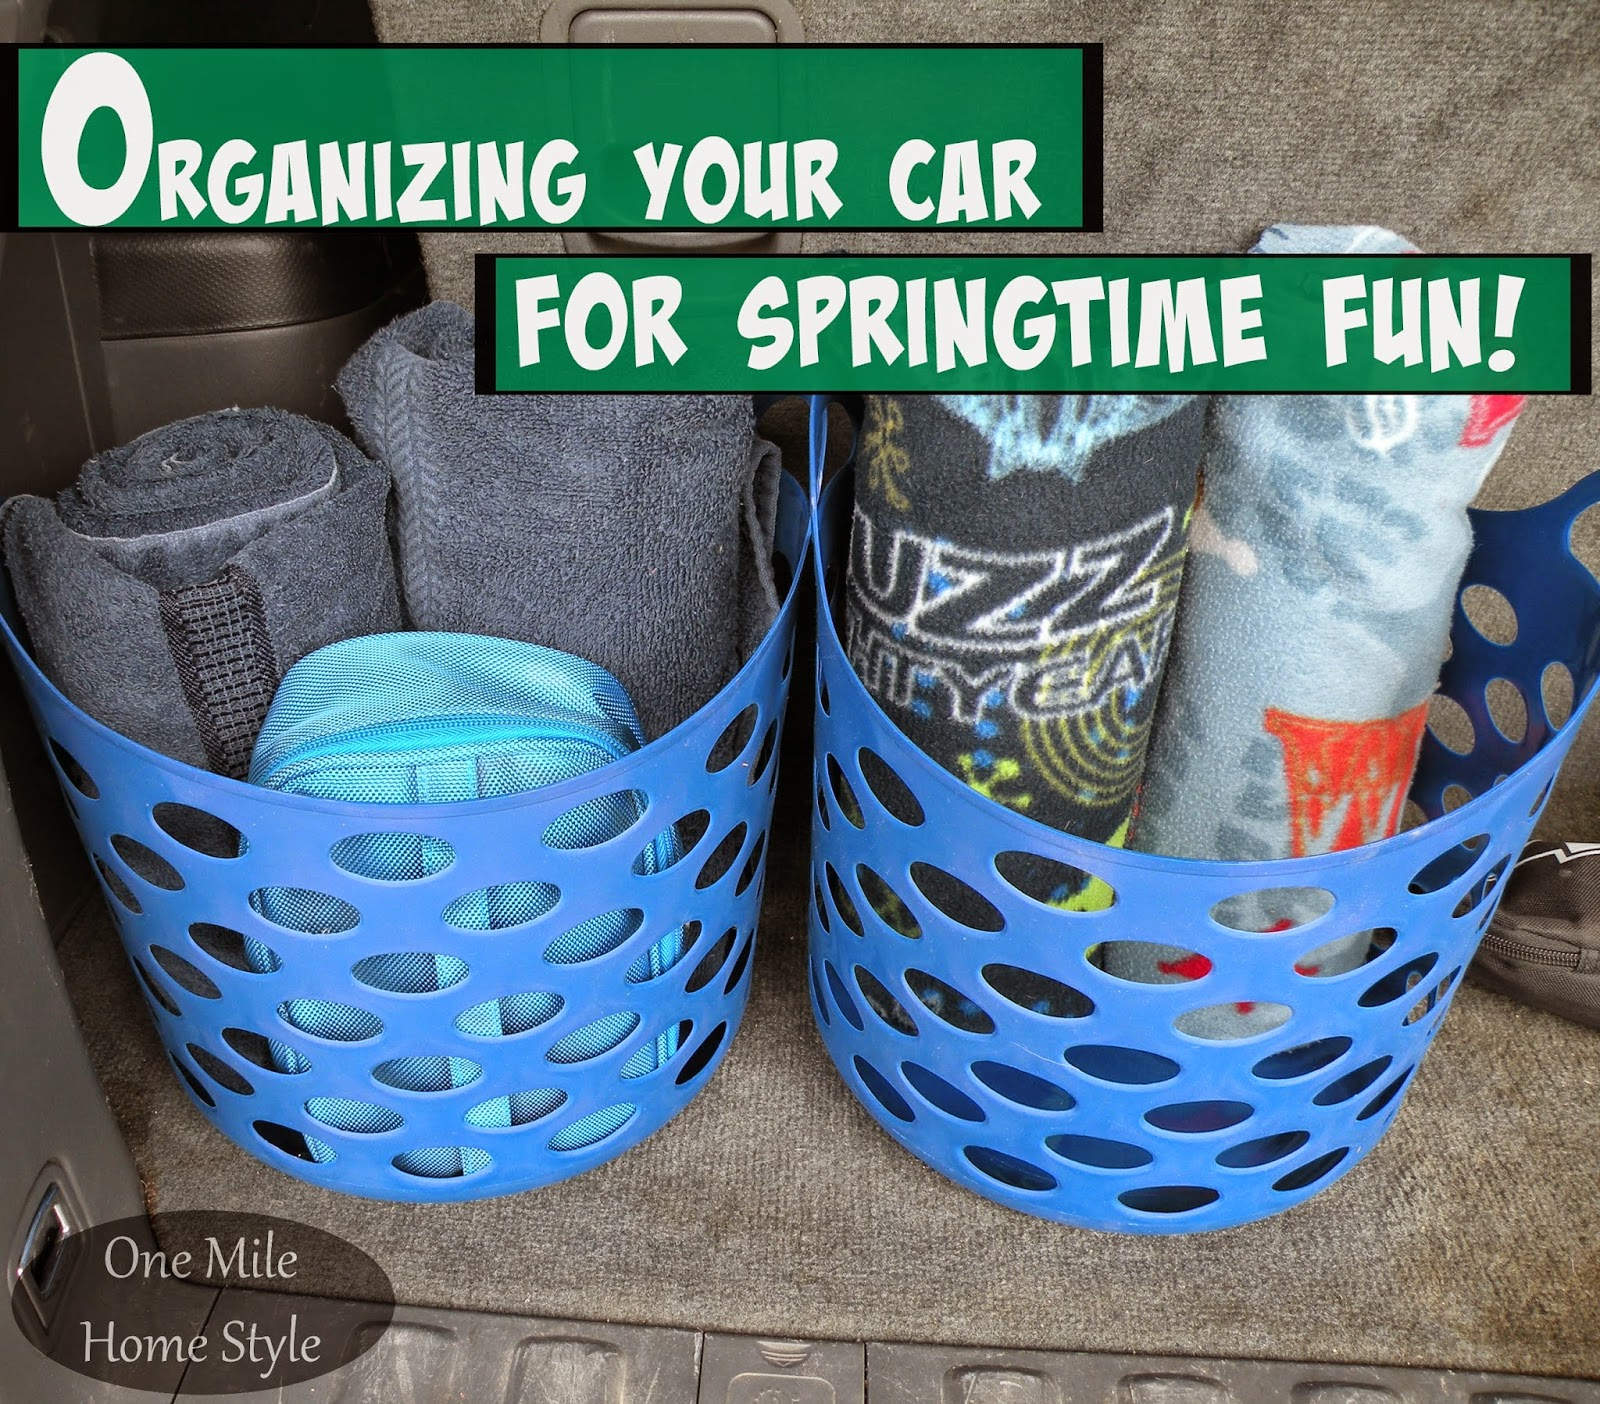 Organizing Your Car For Springtime Fun | One Mile Home Style